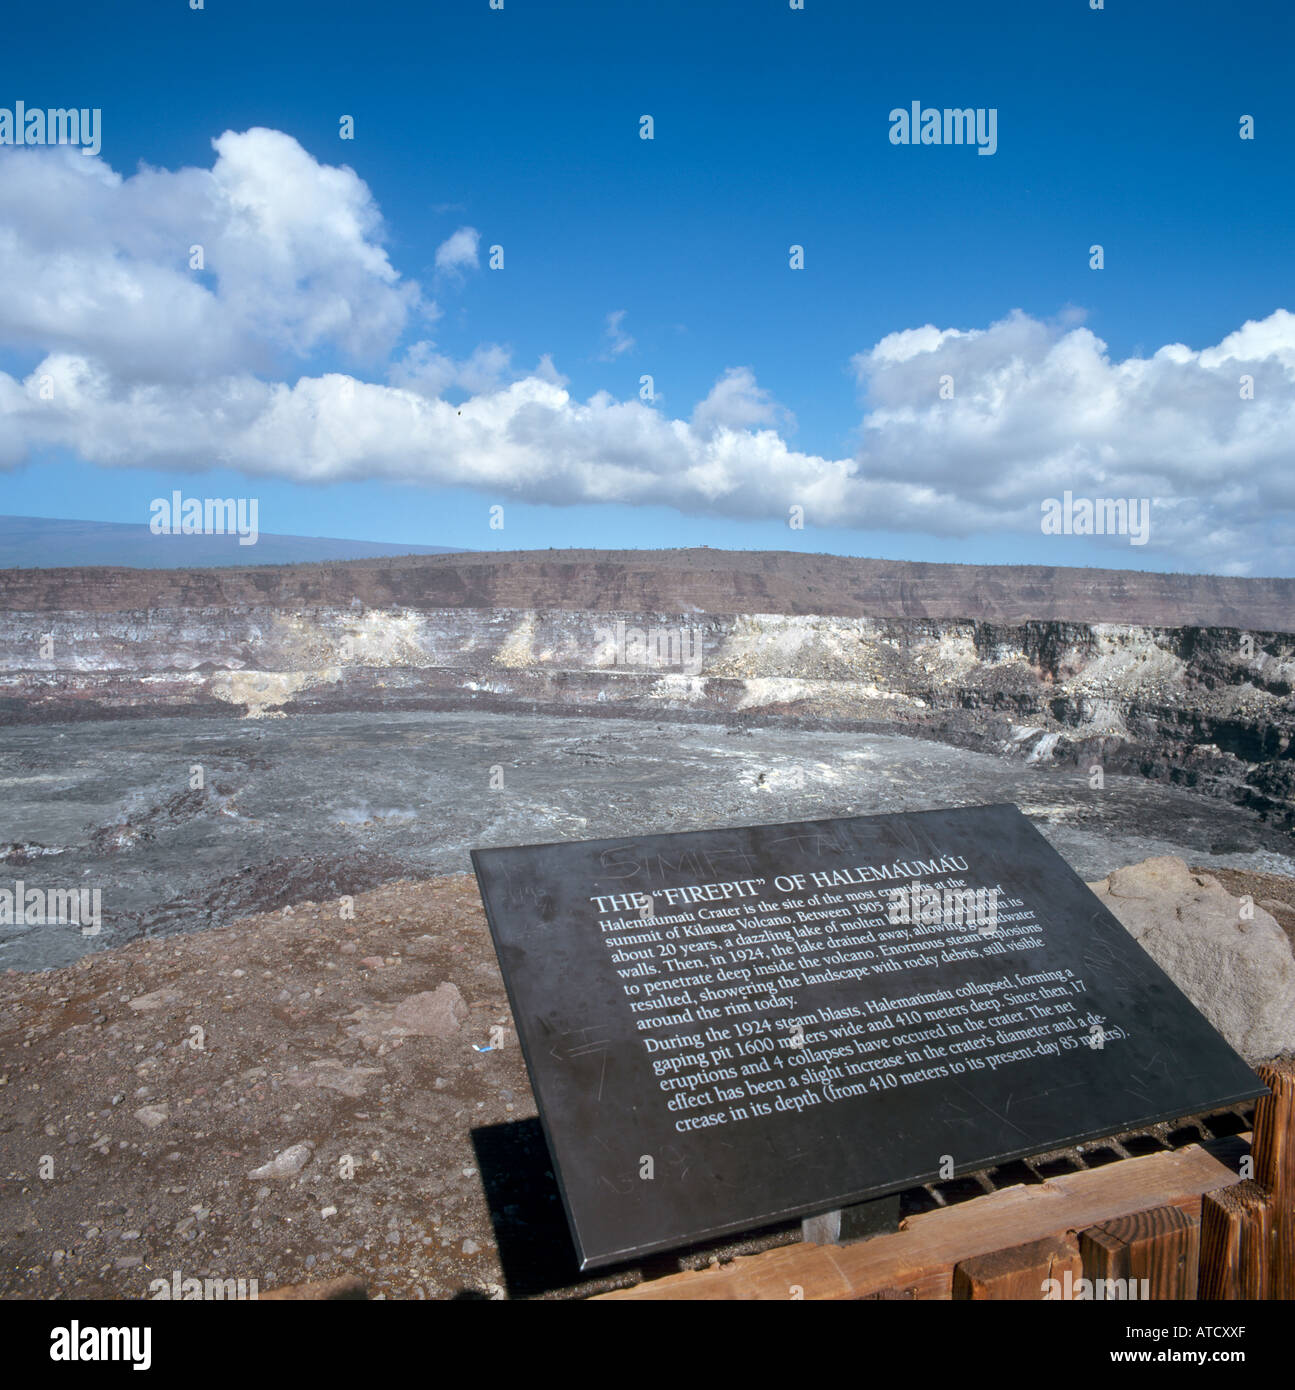 The Firepit, Halemaumau Crater, Volcanoes National Park, Big Island, Hawaii, USA - Stock Image